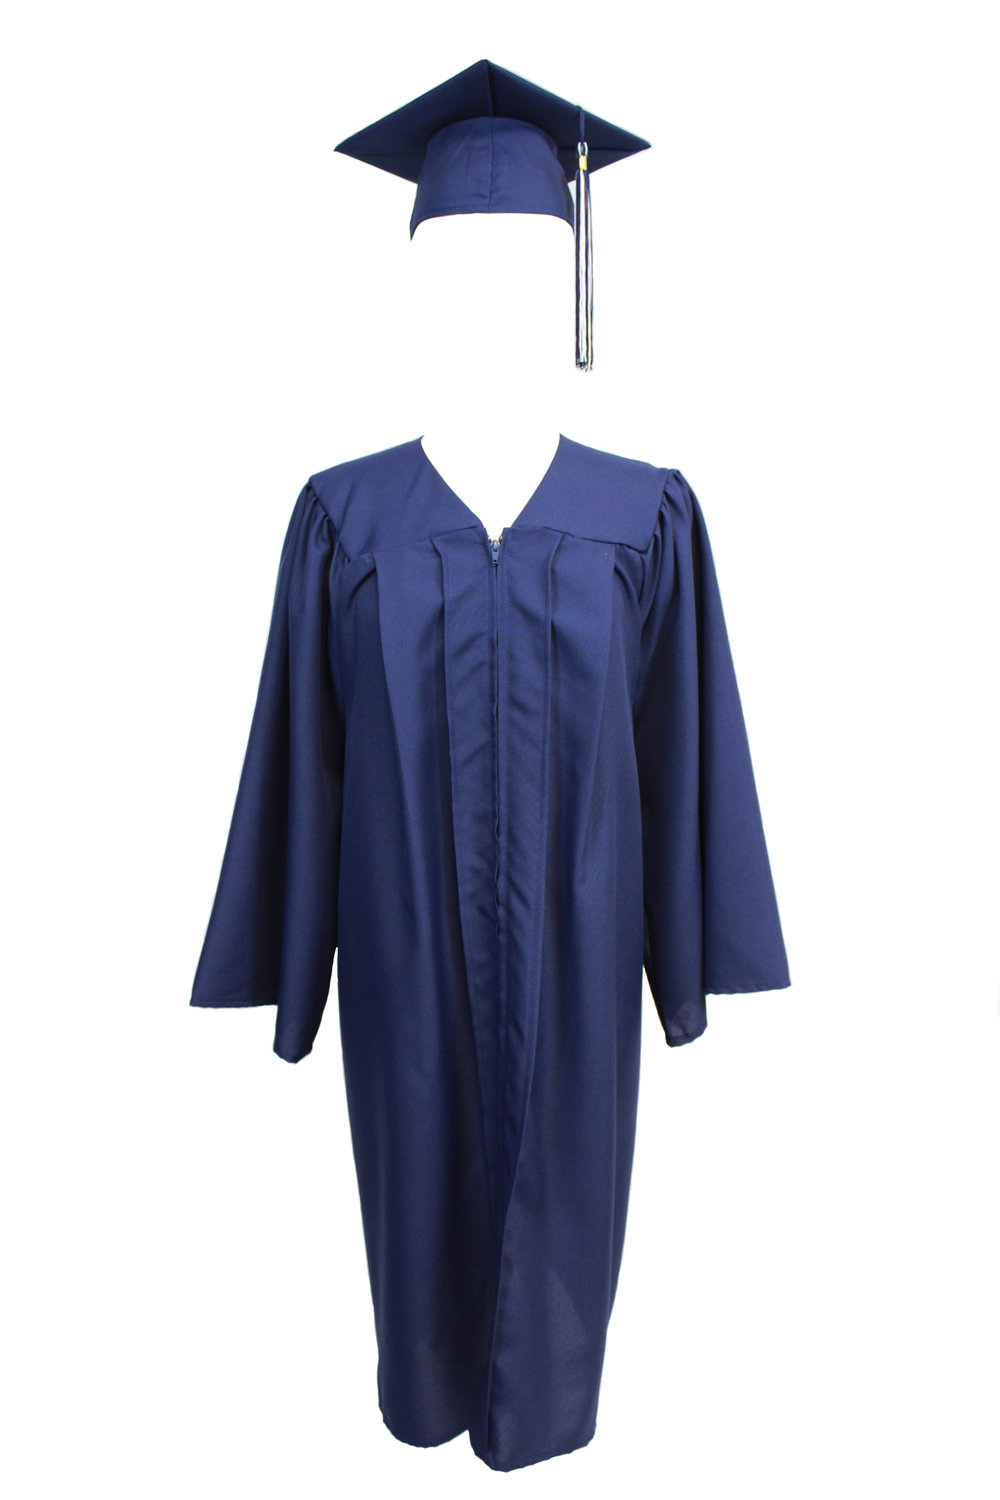 SCVI - Cap & Gown Unit — Achievers Cap & Gown